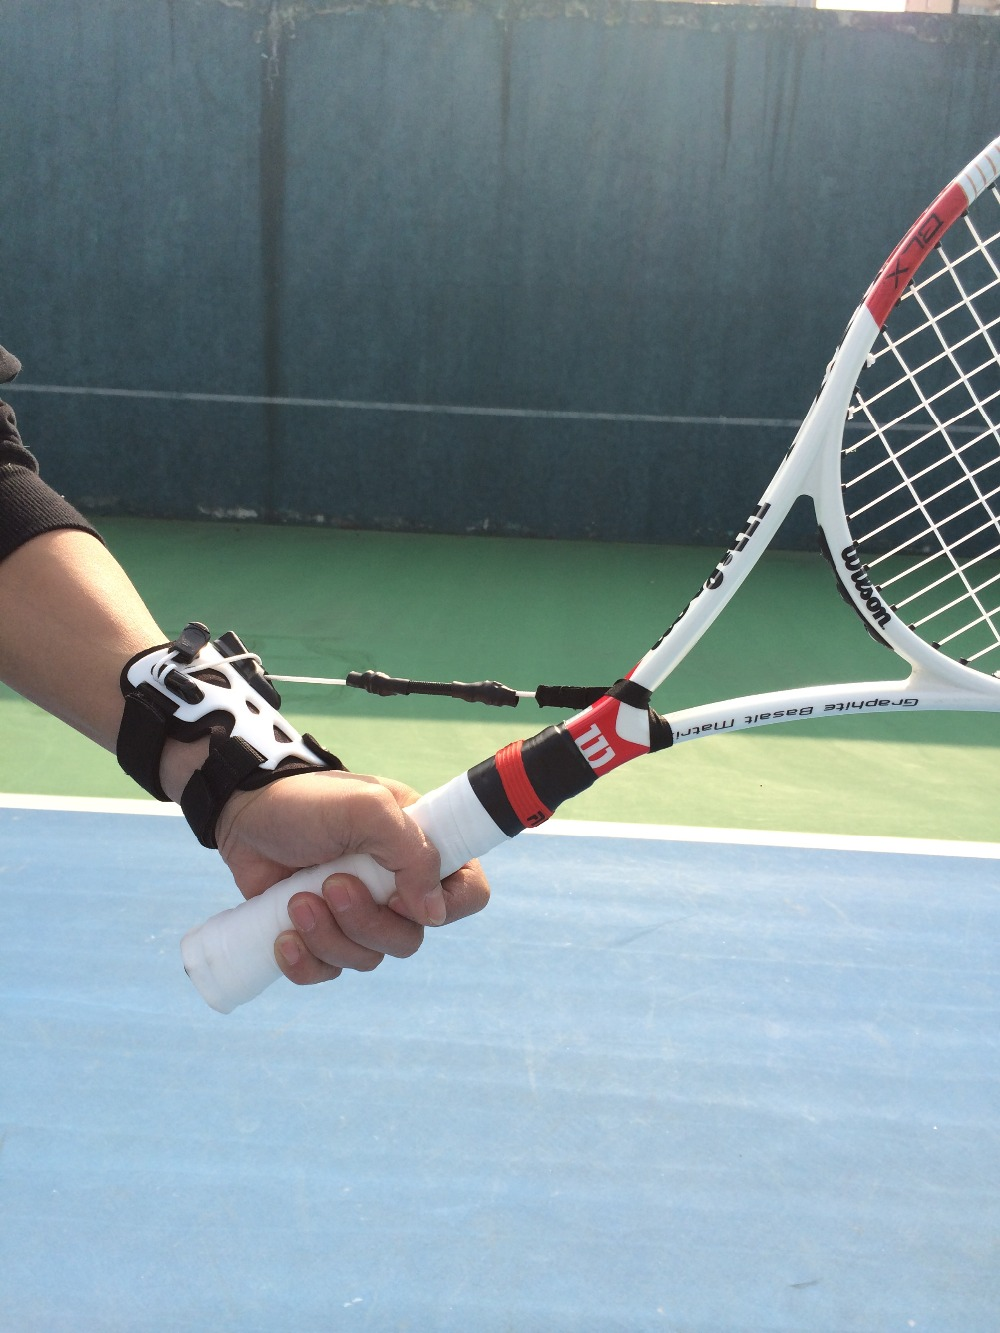 Free shipping tennis Fixed a wrist trainers fast master Tennis racket swing Main point Correct the wrist movement adjustable wrist and forearm splint external fixed support wrist brace fixing orthosisfit for men and women